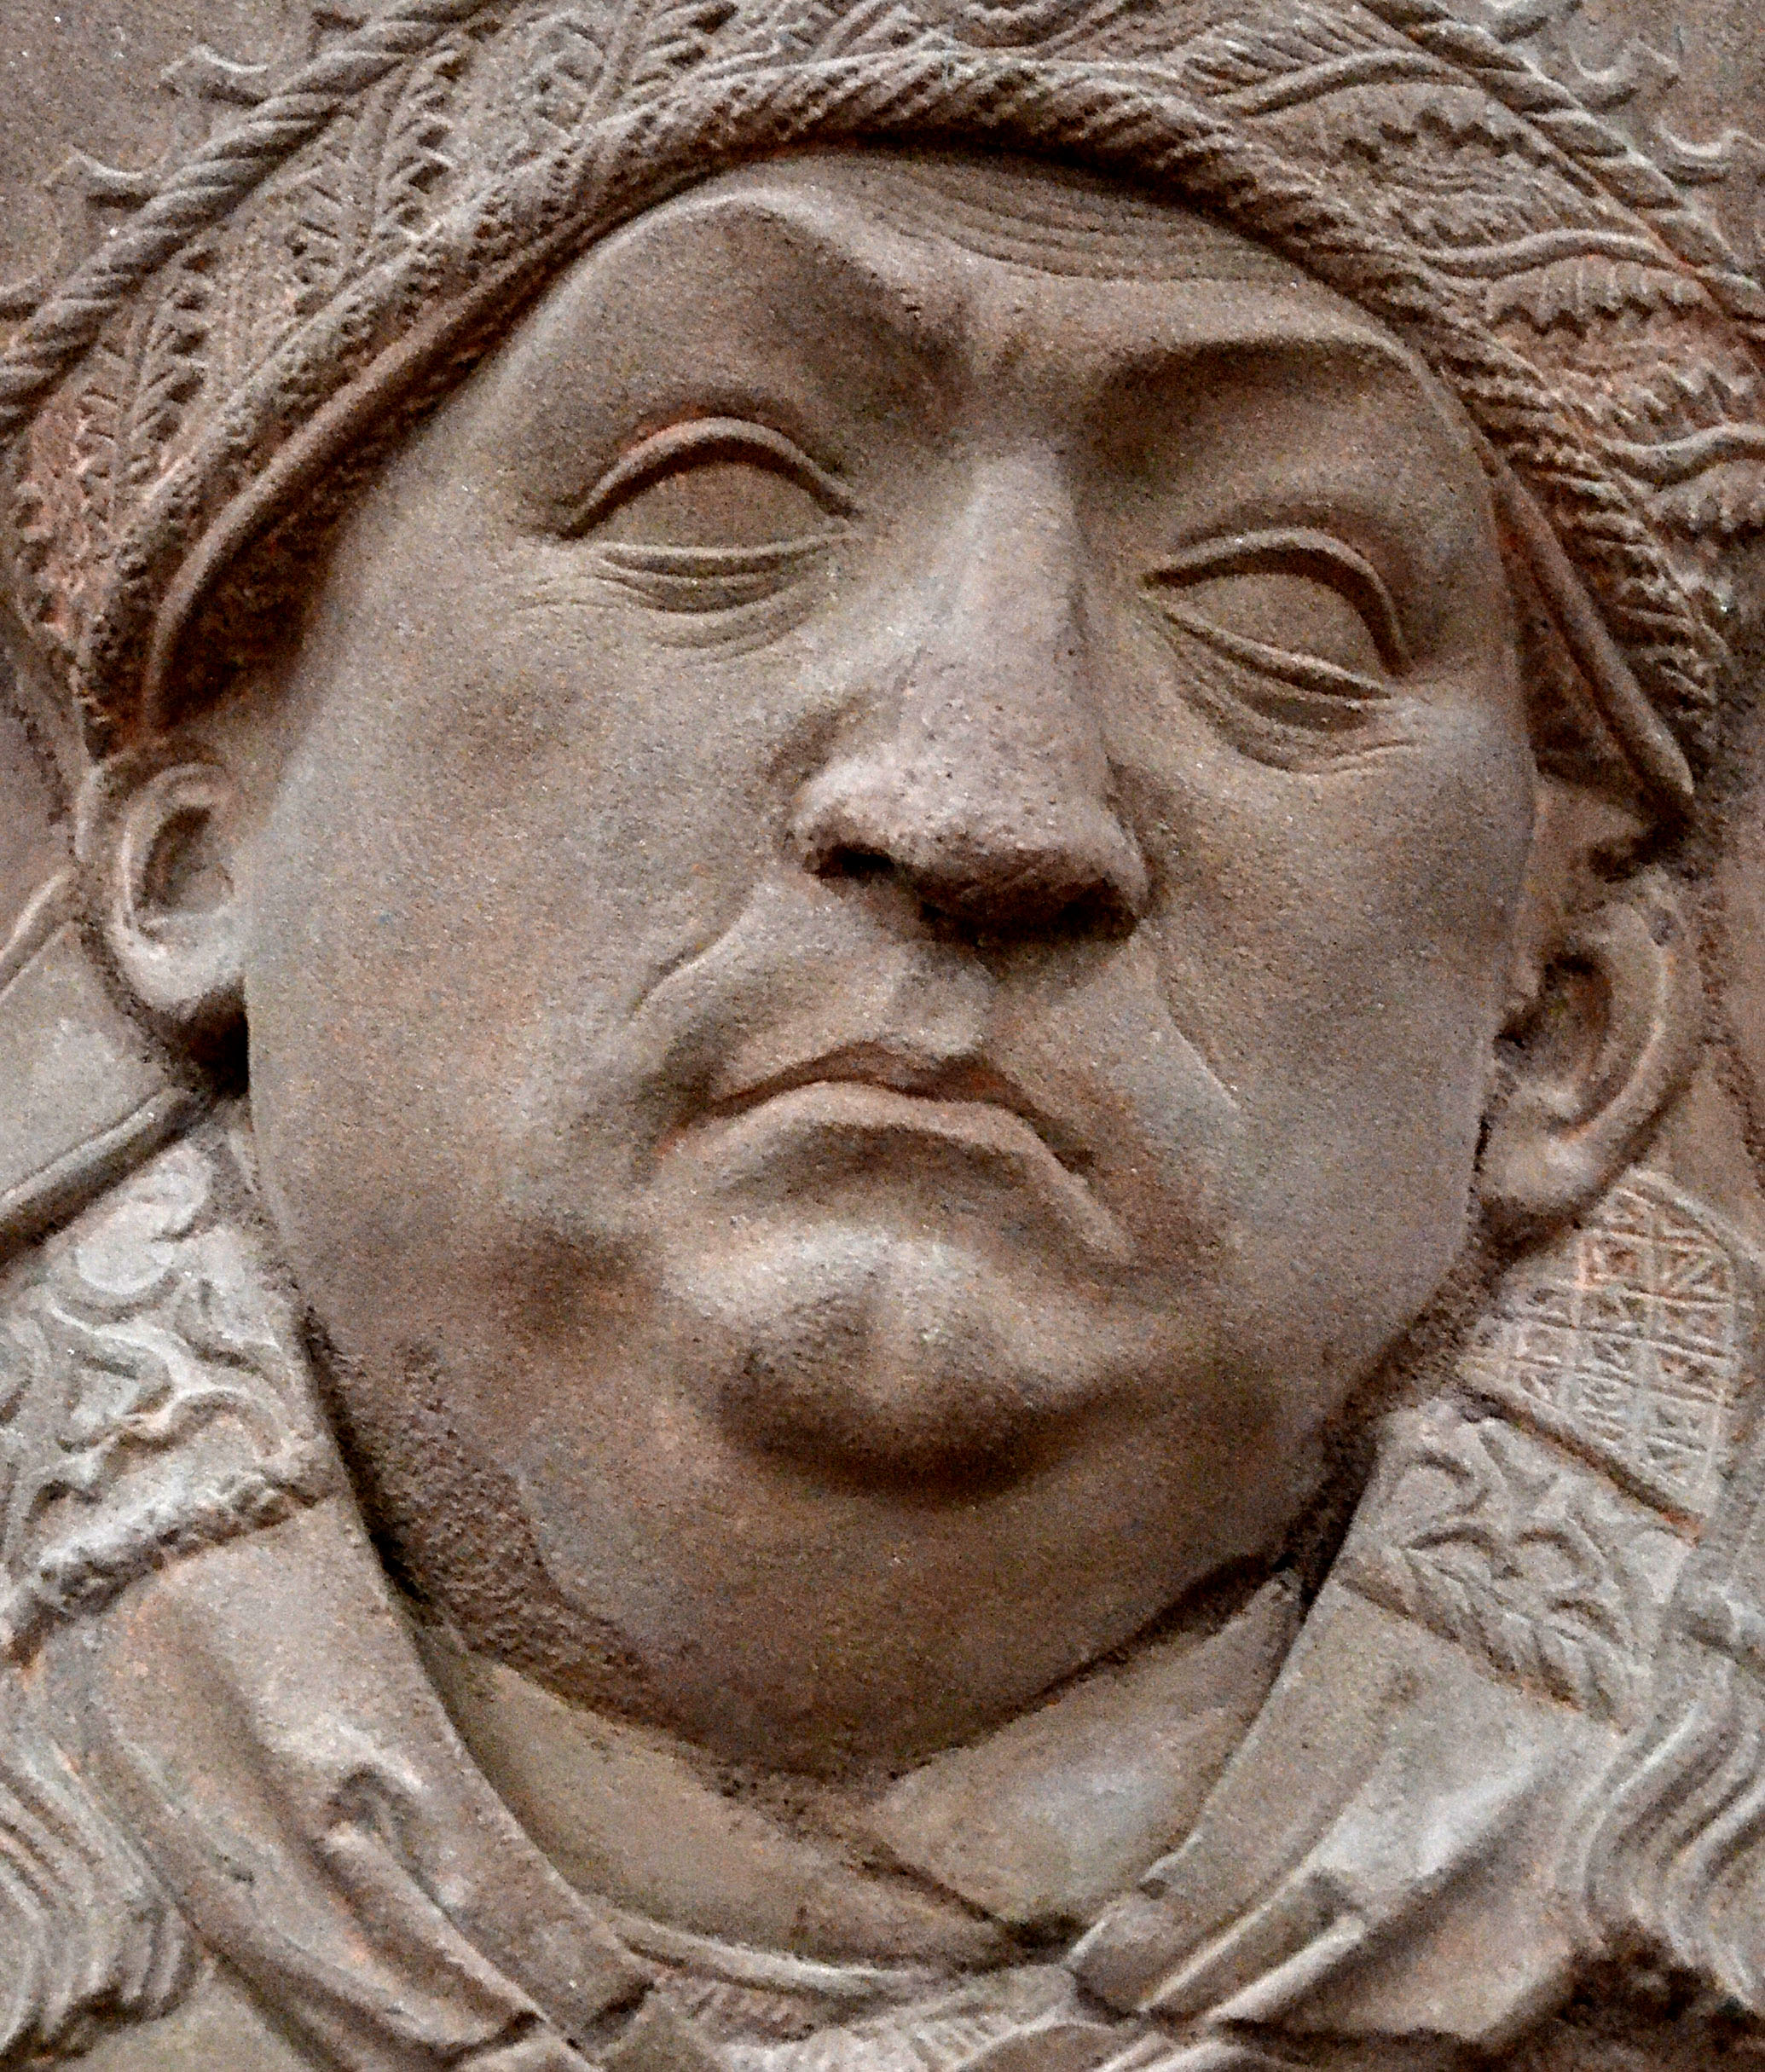 Detail of Tomb Relief of Johannes Trithemius by [[Tilman Riemenschneider]]